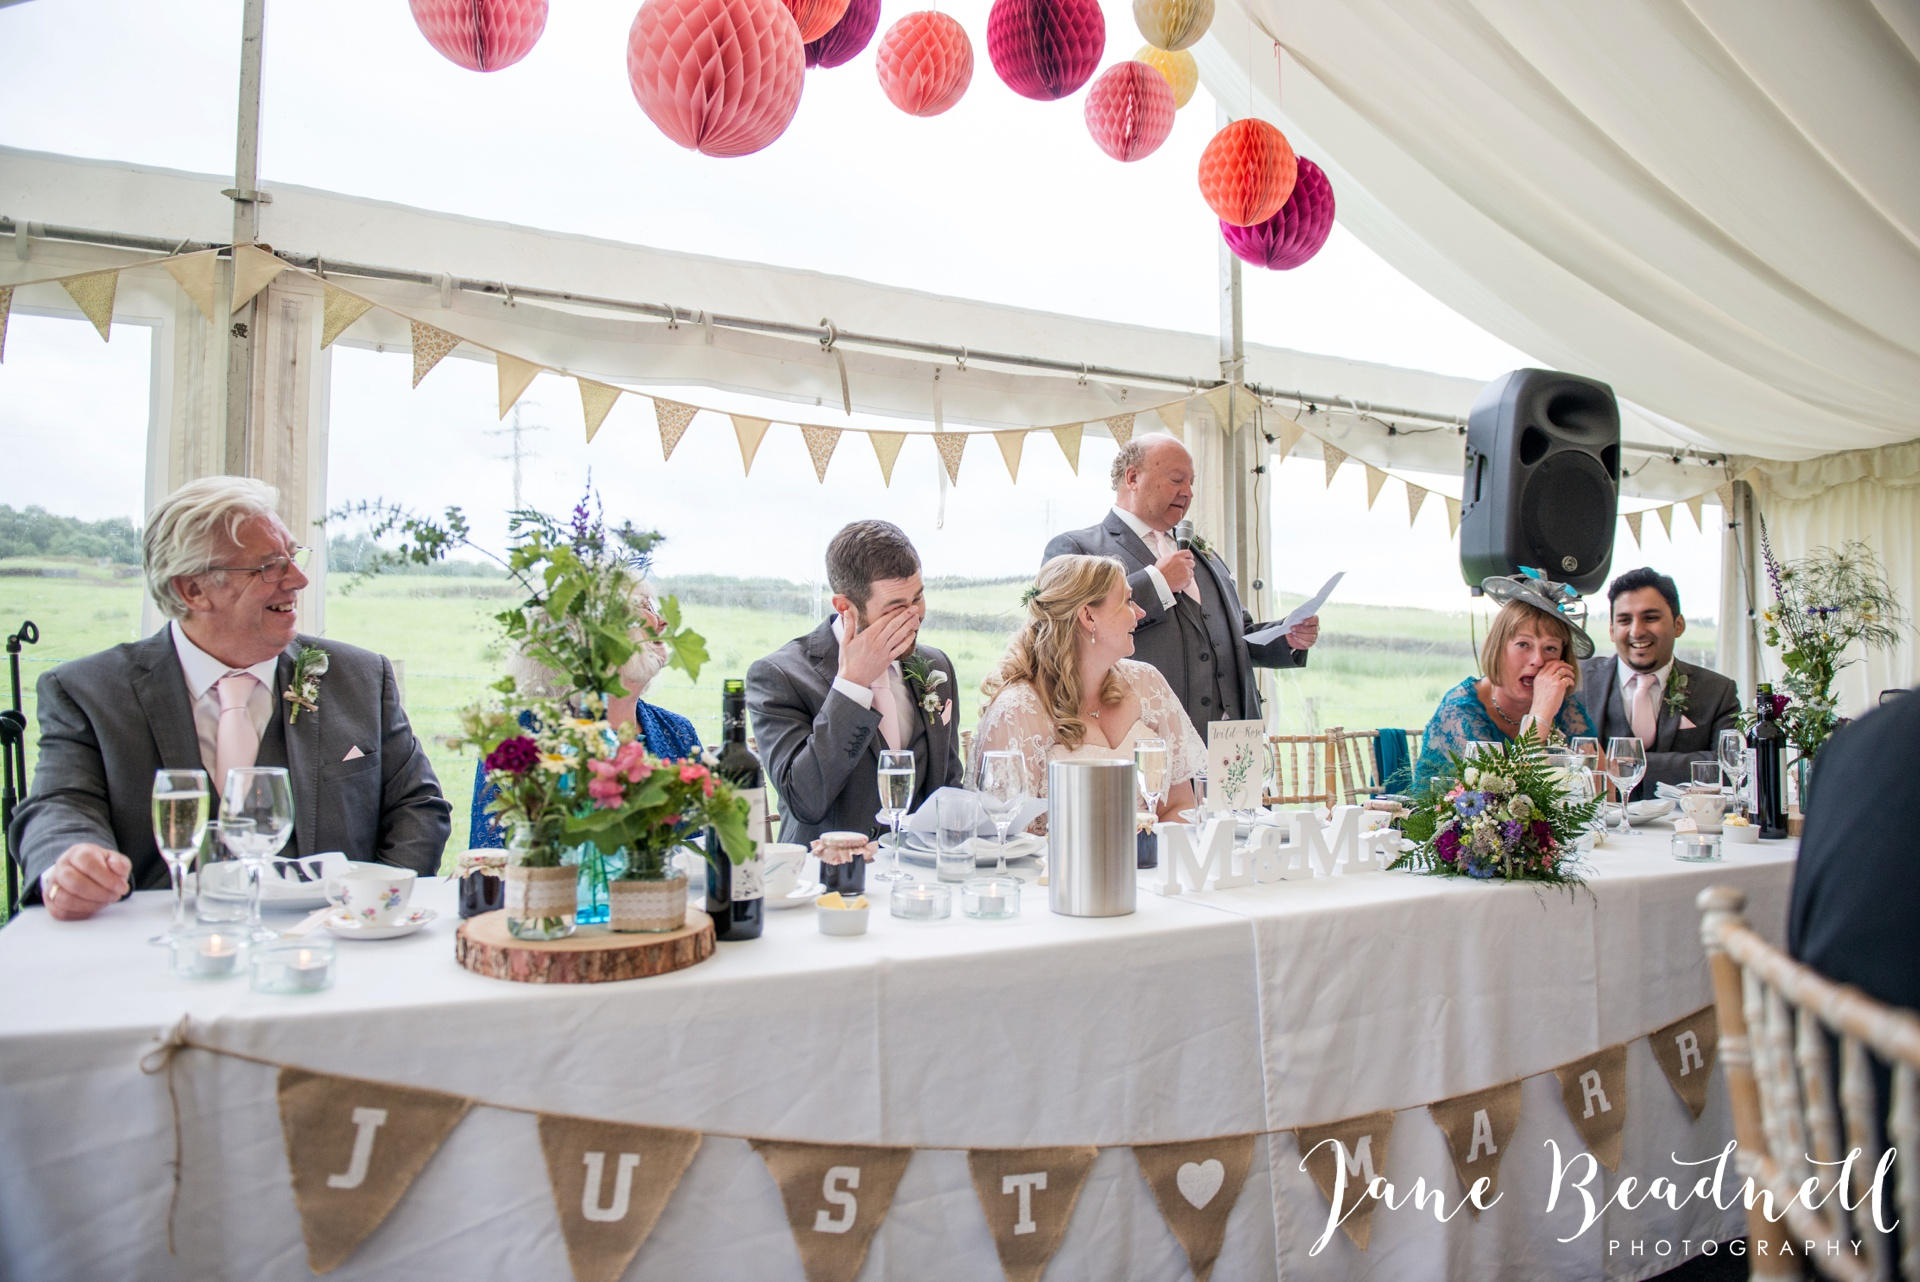 Yorkshire Wedding Photography the cheerful Chilli Barn Wedding by Jane Beadnell Photography_0164